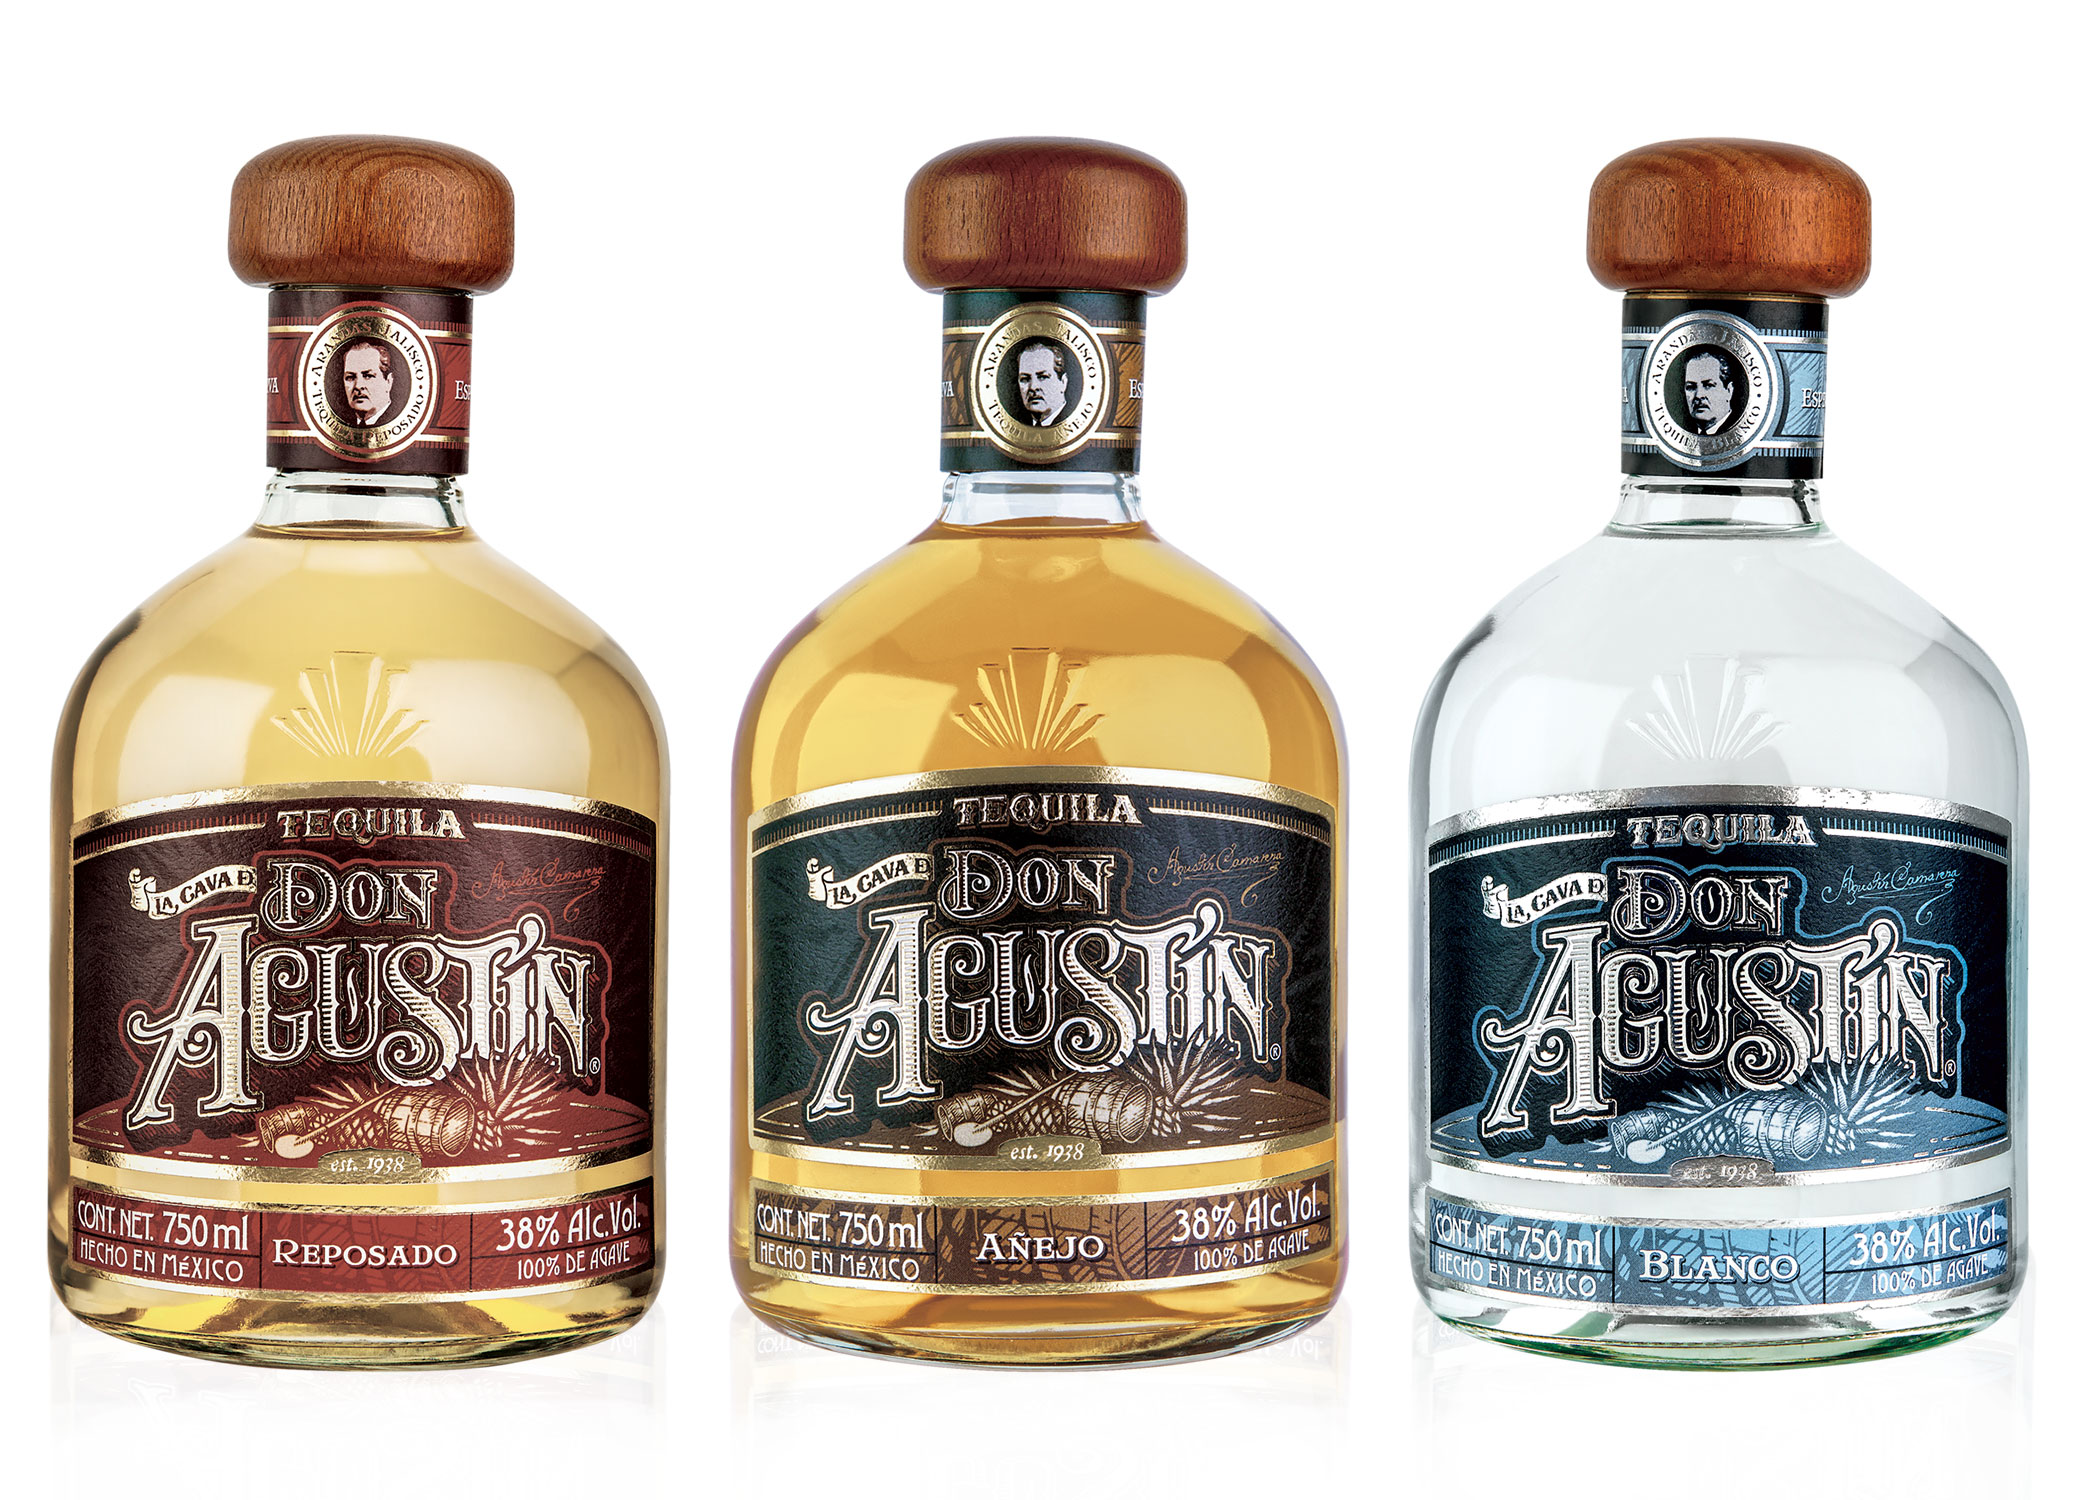 DON AGUSTIN - Don Agustin tequila is named after the founder of the distillery, Don Agustin Camarena. Made from 100% Agave, the piñas are traditionally baked for 60 hours in brick ovens, rather than autoclave, and a similar level of attention to traditional methods is applied to every part of the process.